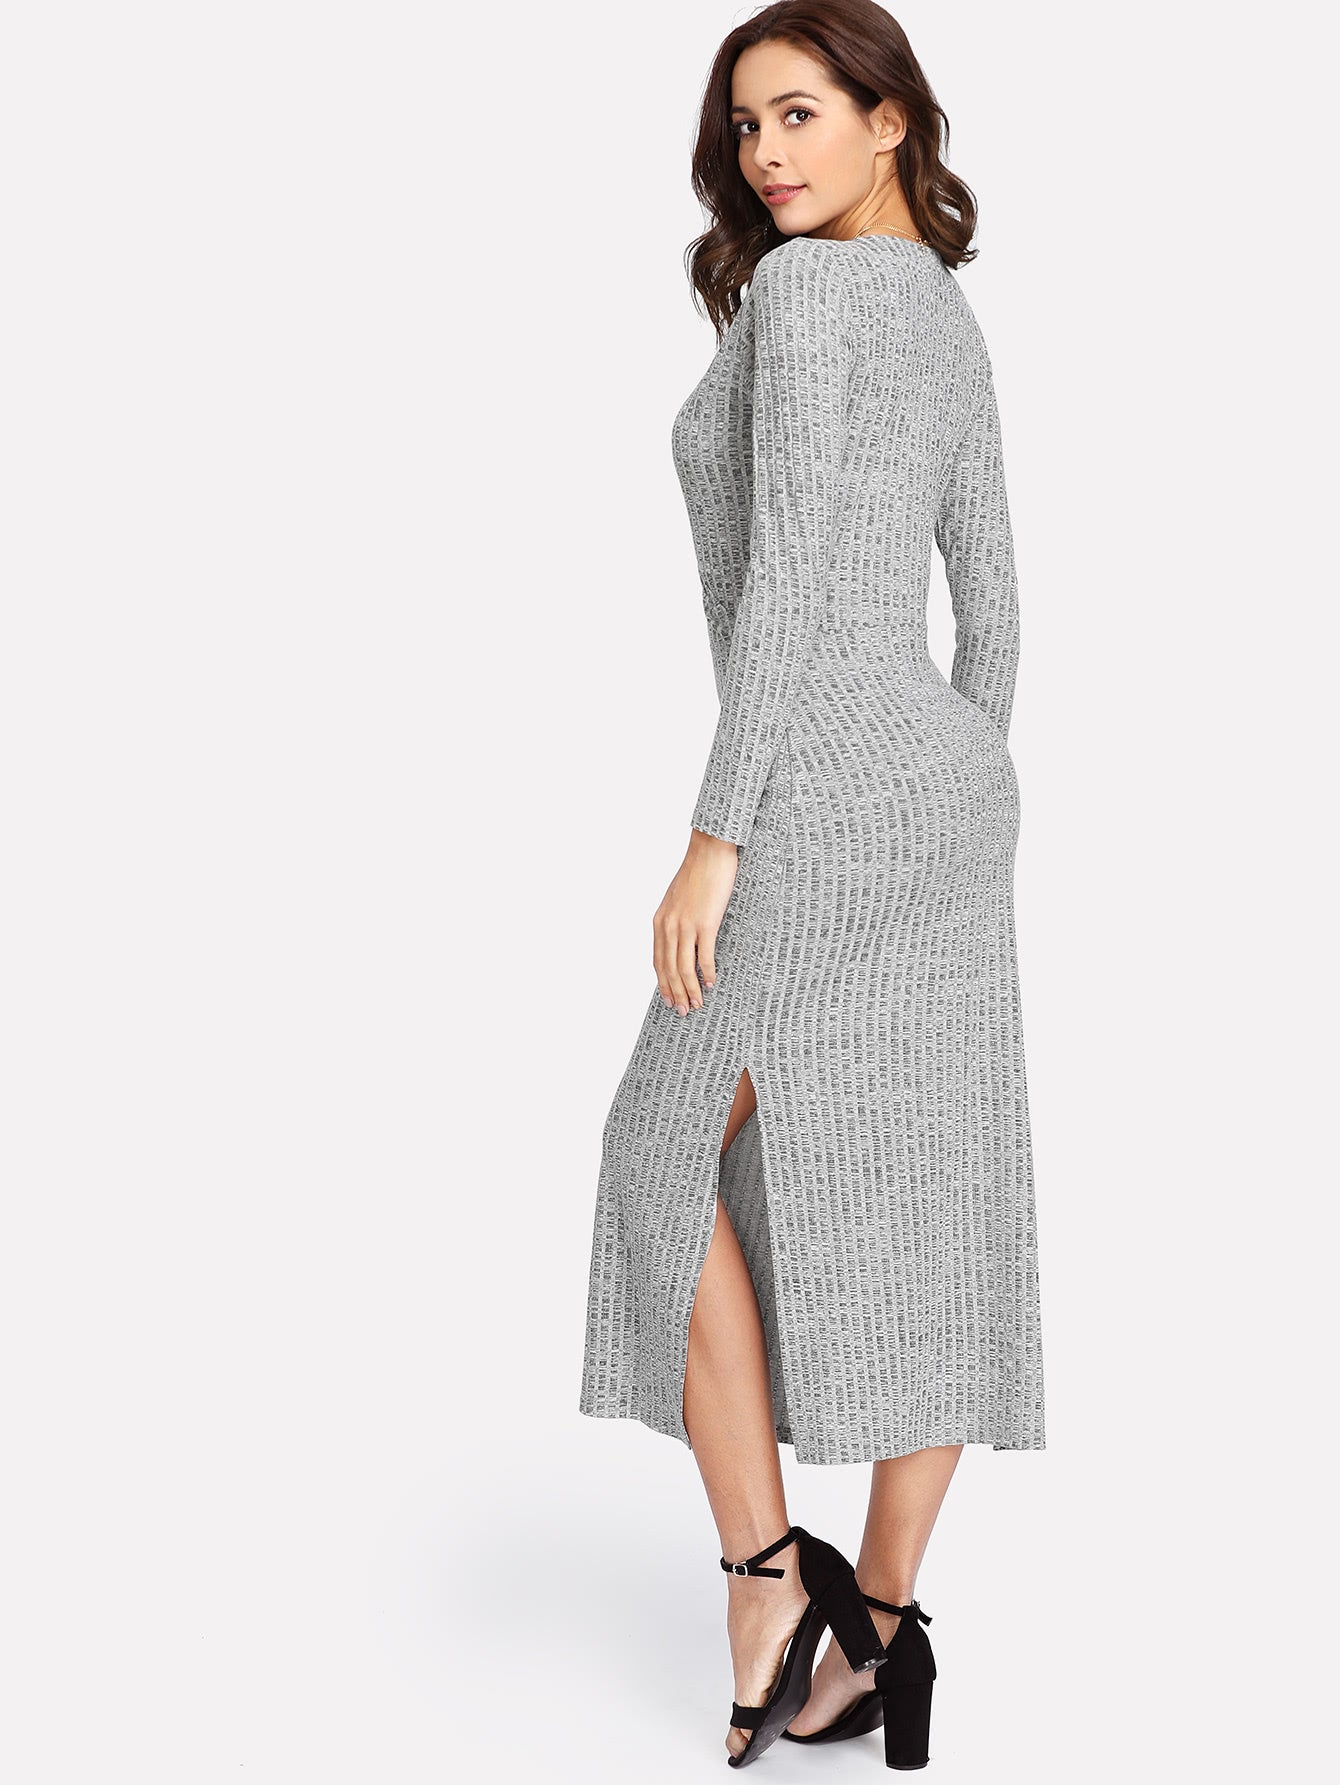 V Neckline Split Side Slub Knit Dress - Miranda's Paparazzi Style